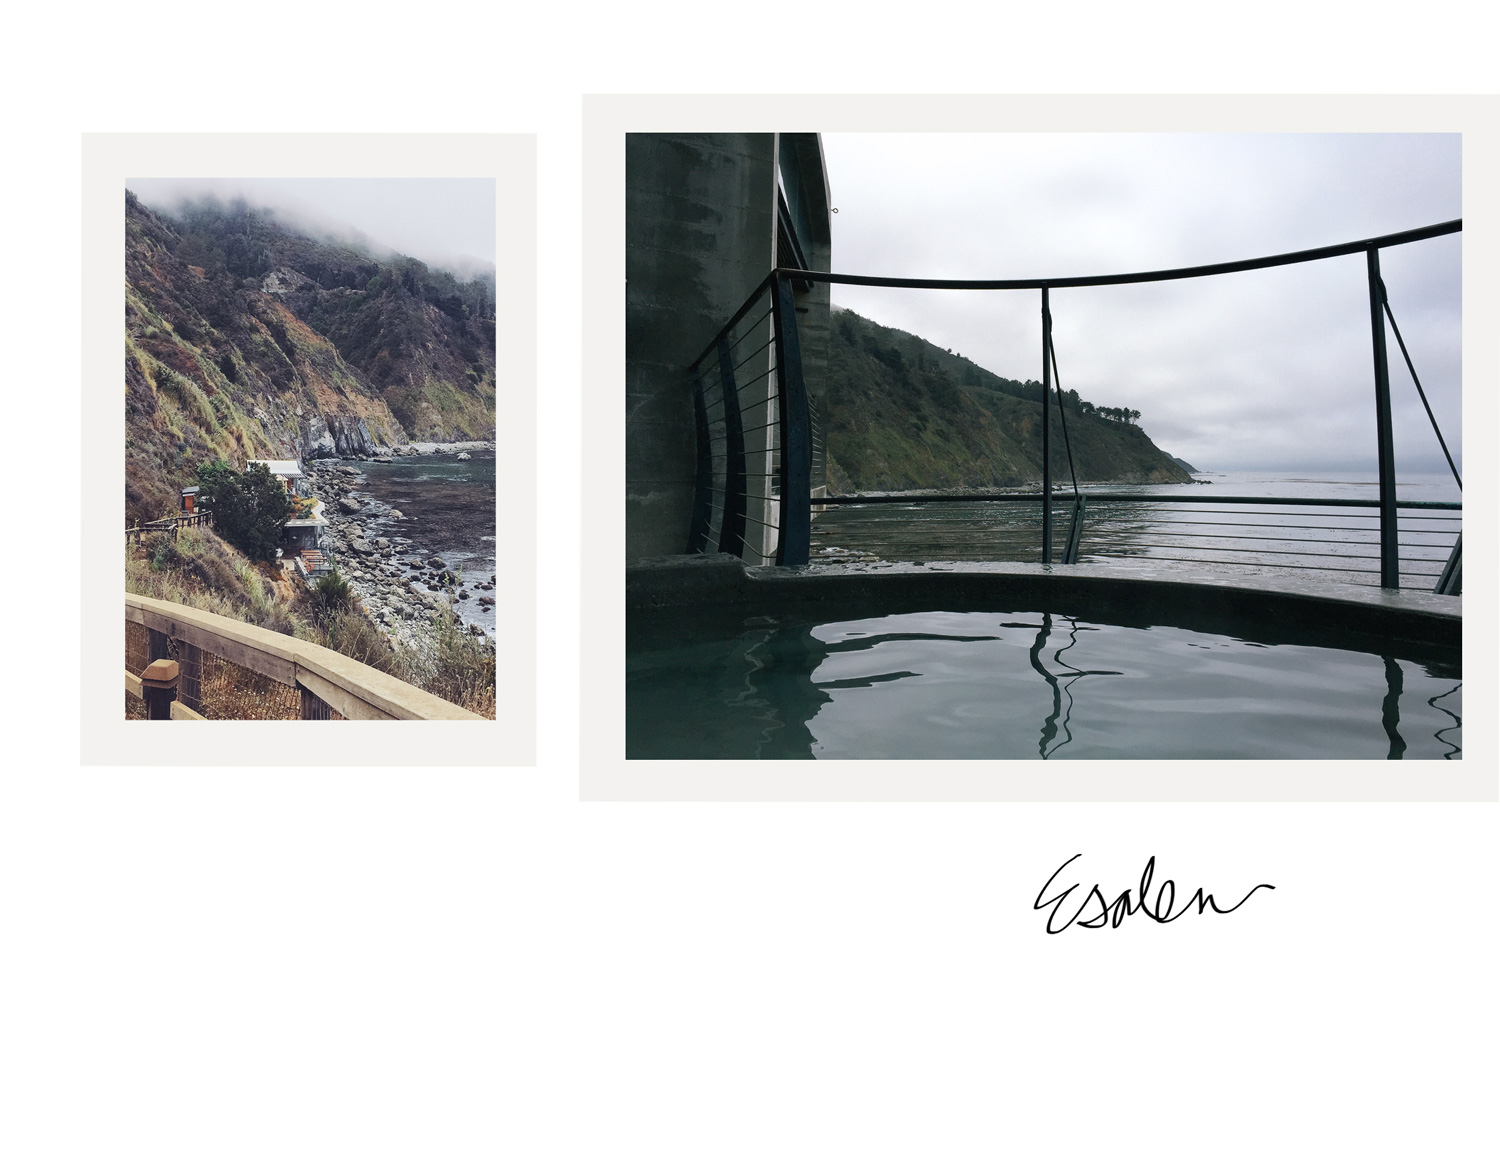 Esalen-Institue-in-Big-Sur-by-Naomi-Yamada.jpg